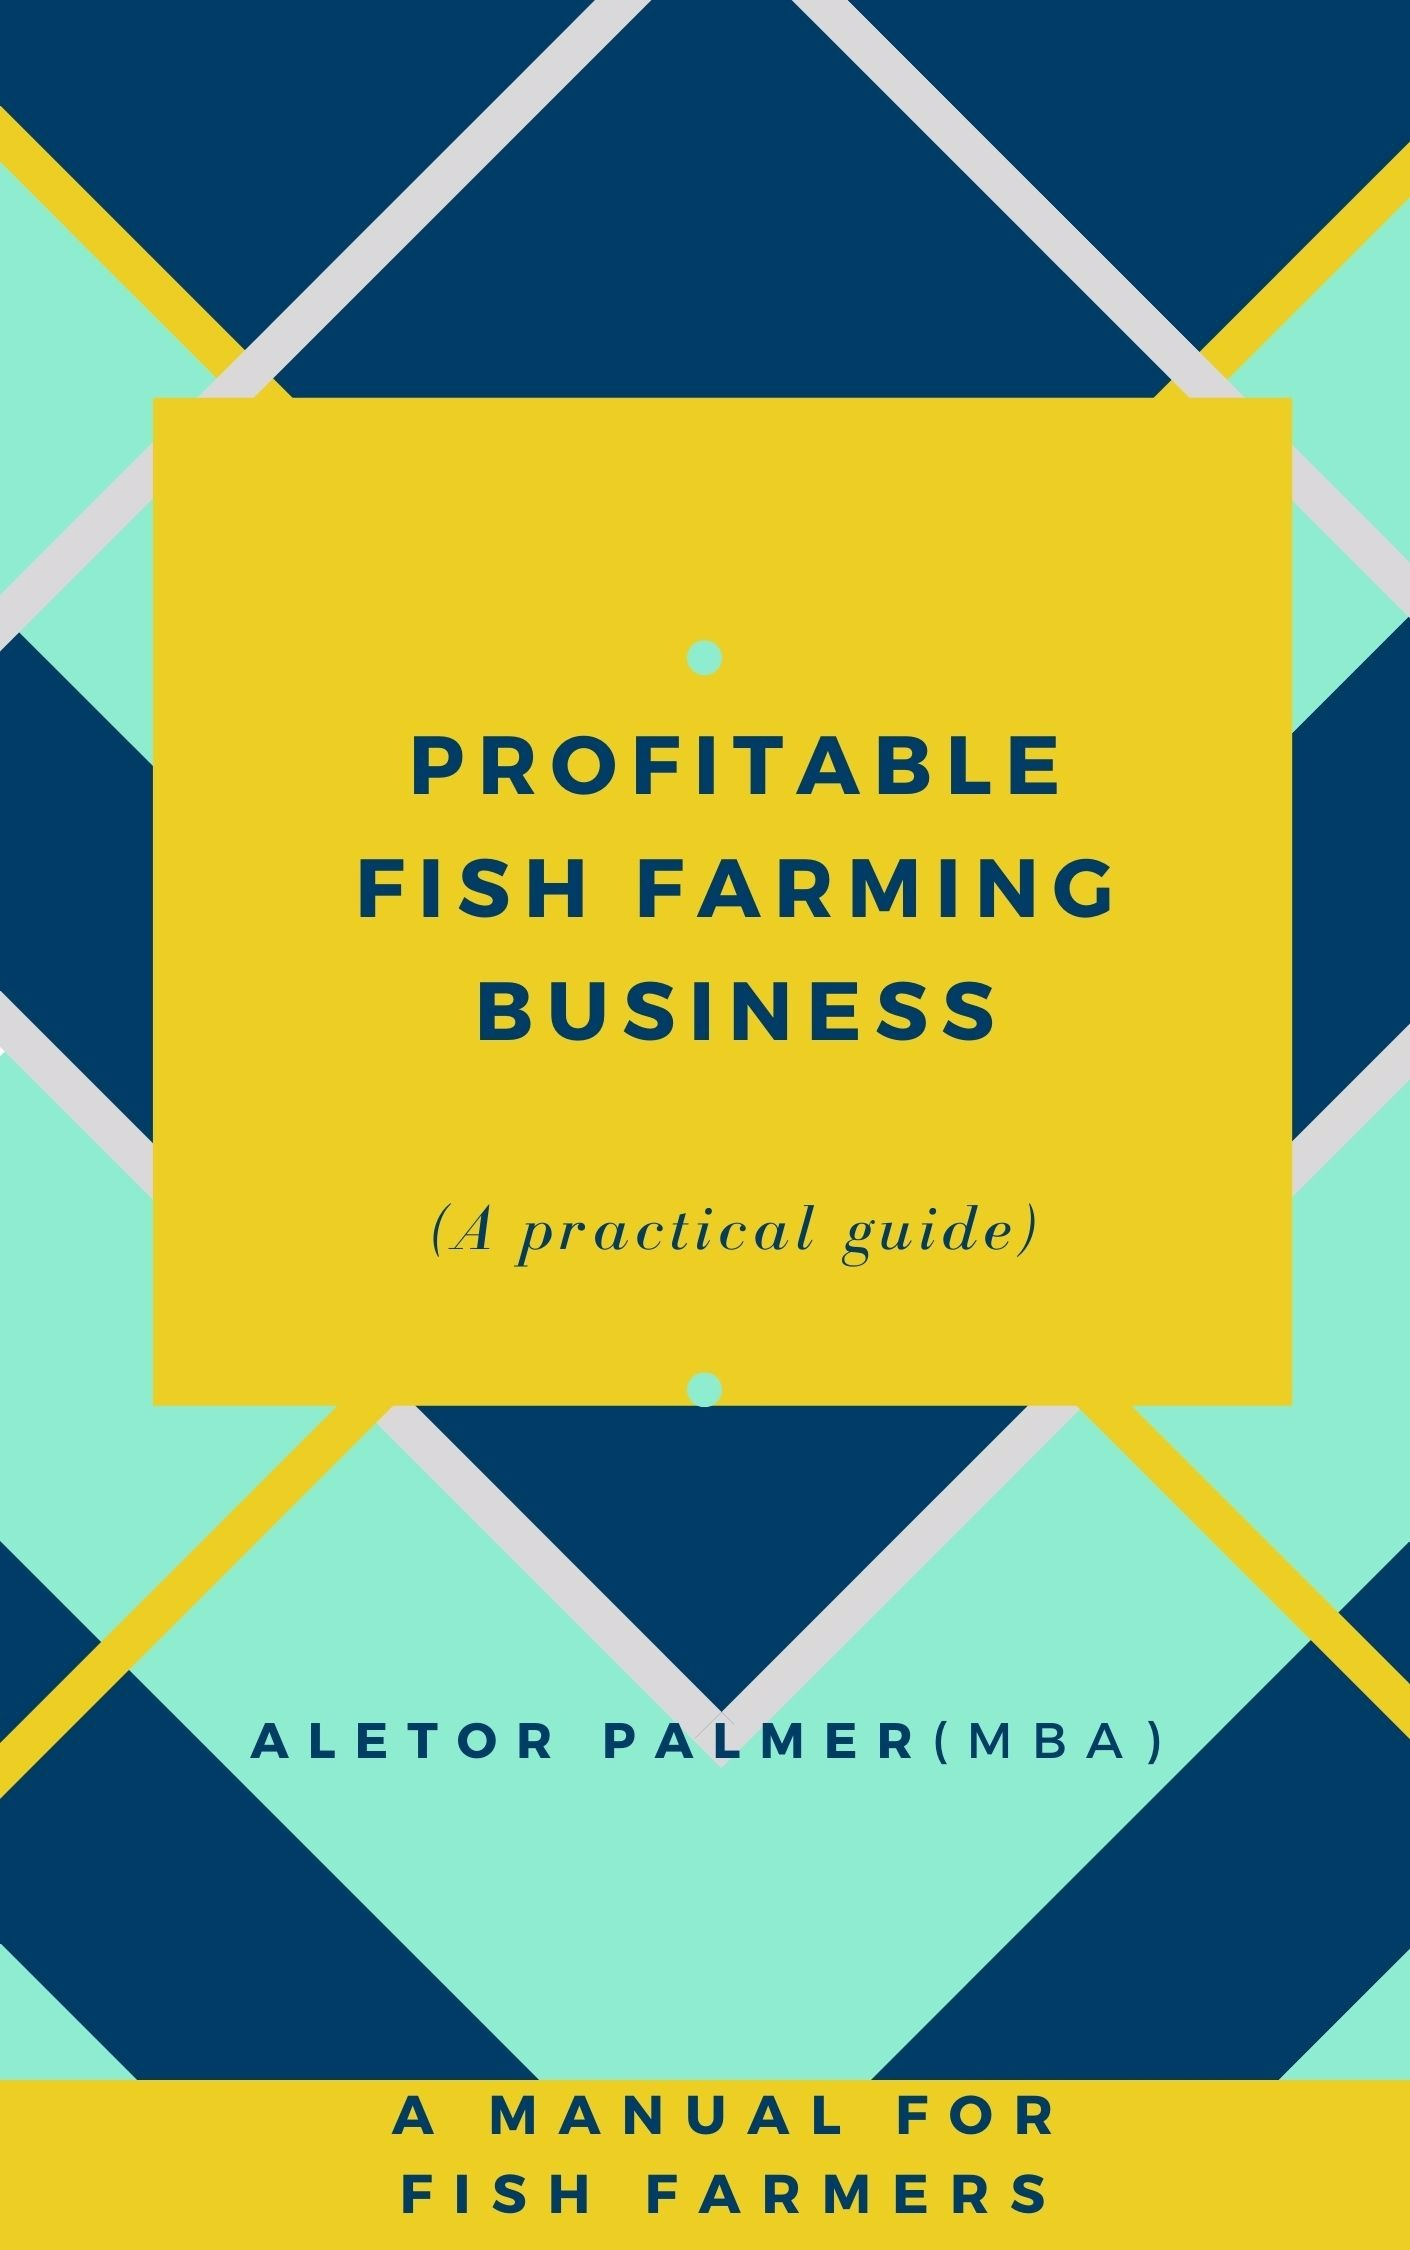 Profitable Fish Farming Business